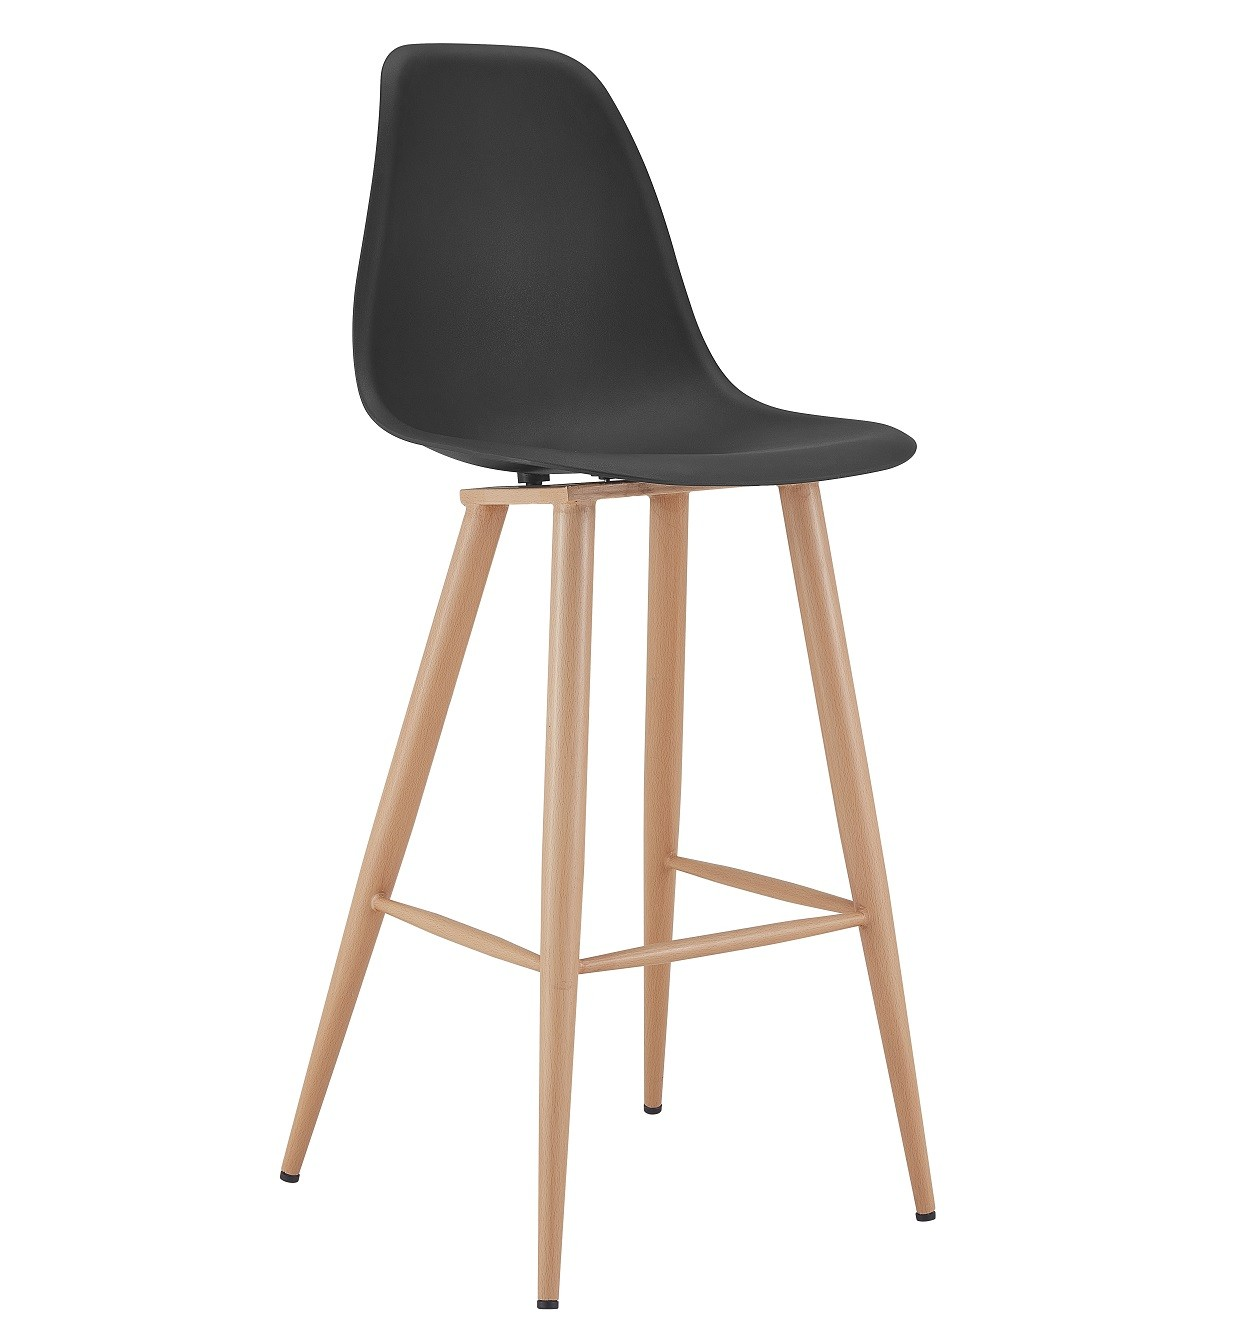 Stool CLUNY, Metal Wood Color, Black Polypropylene